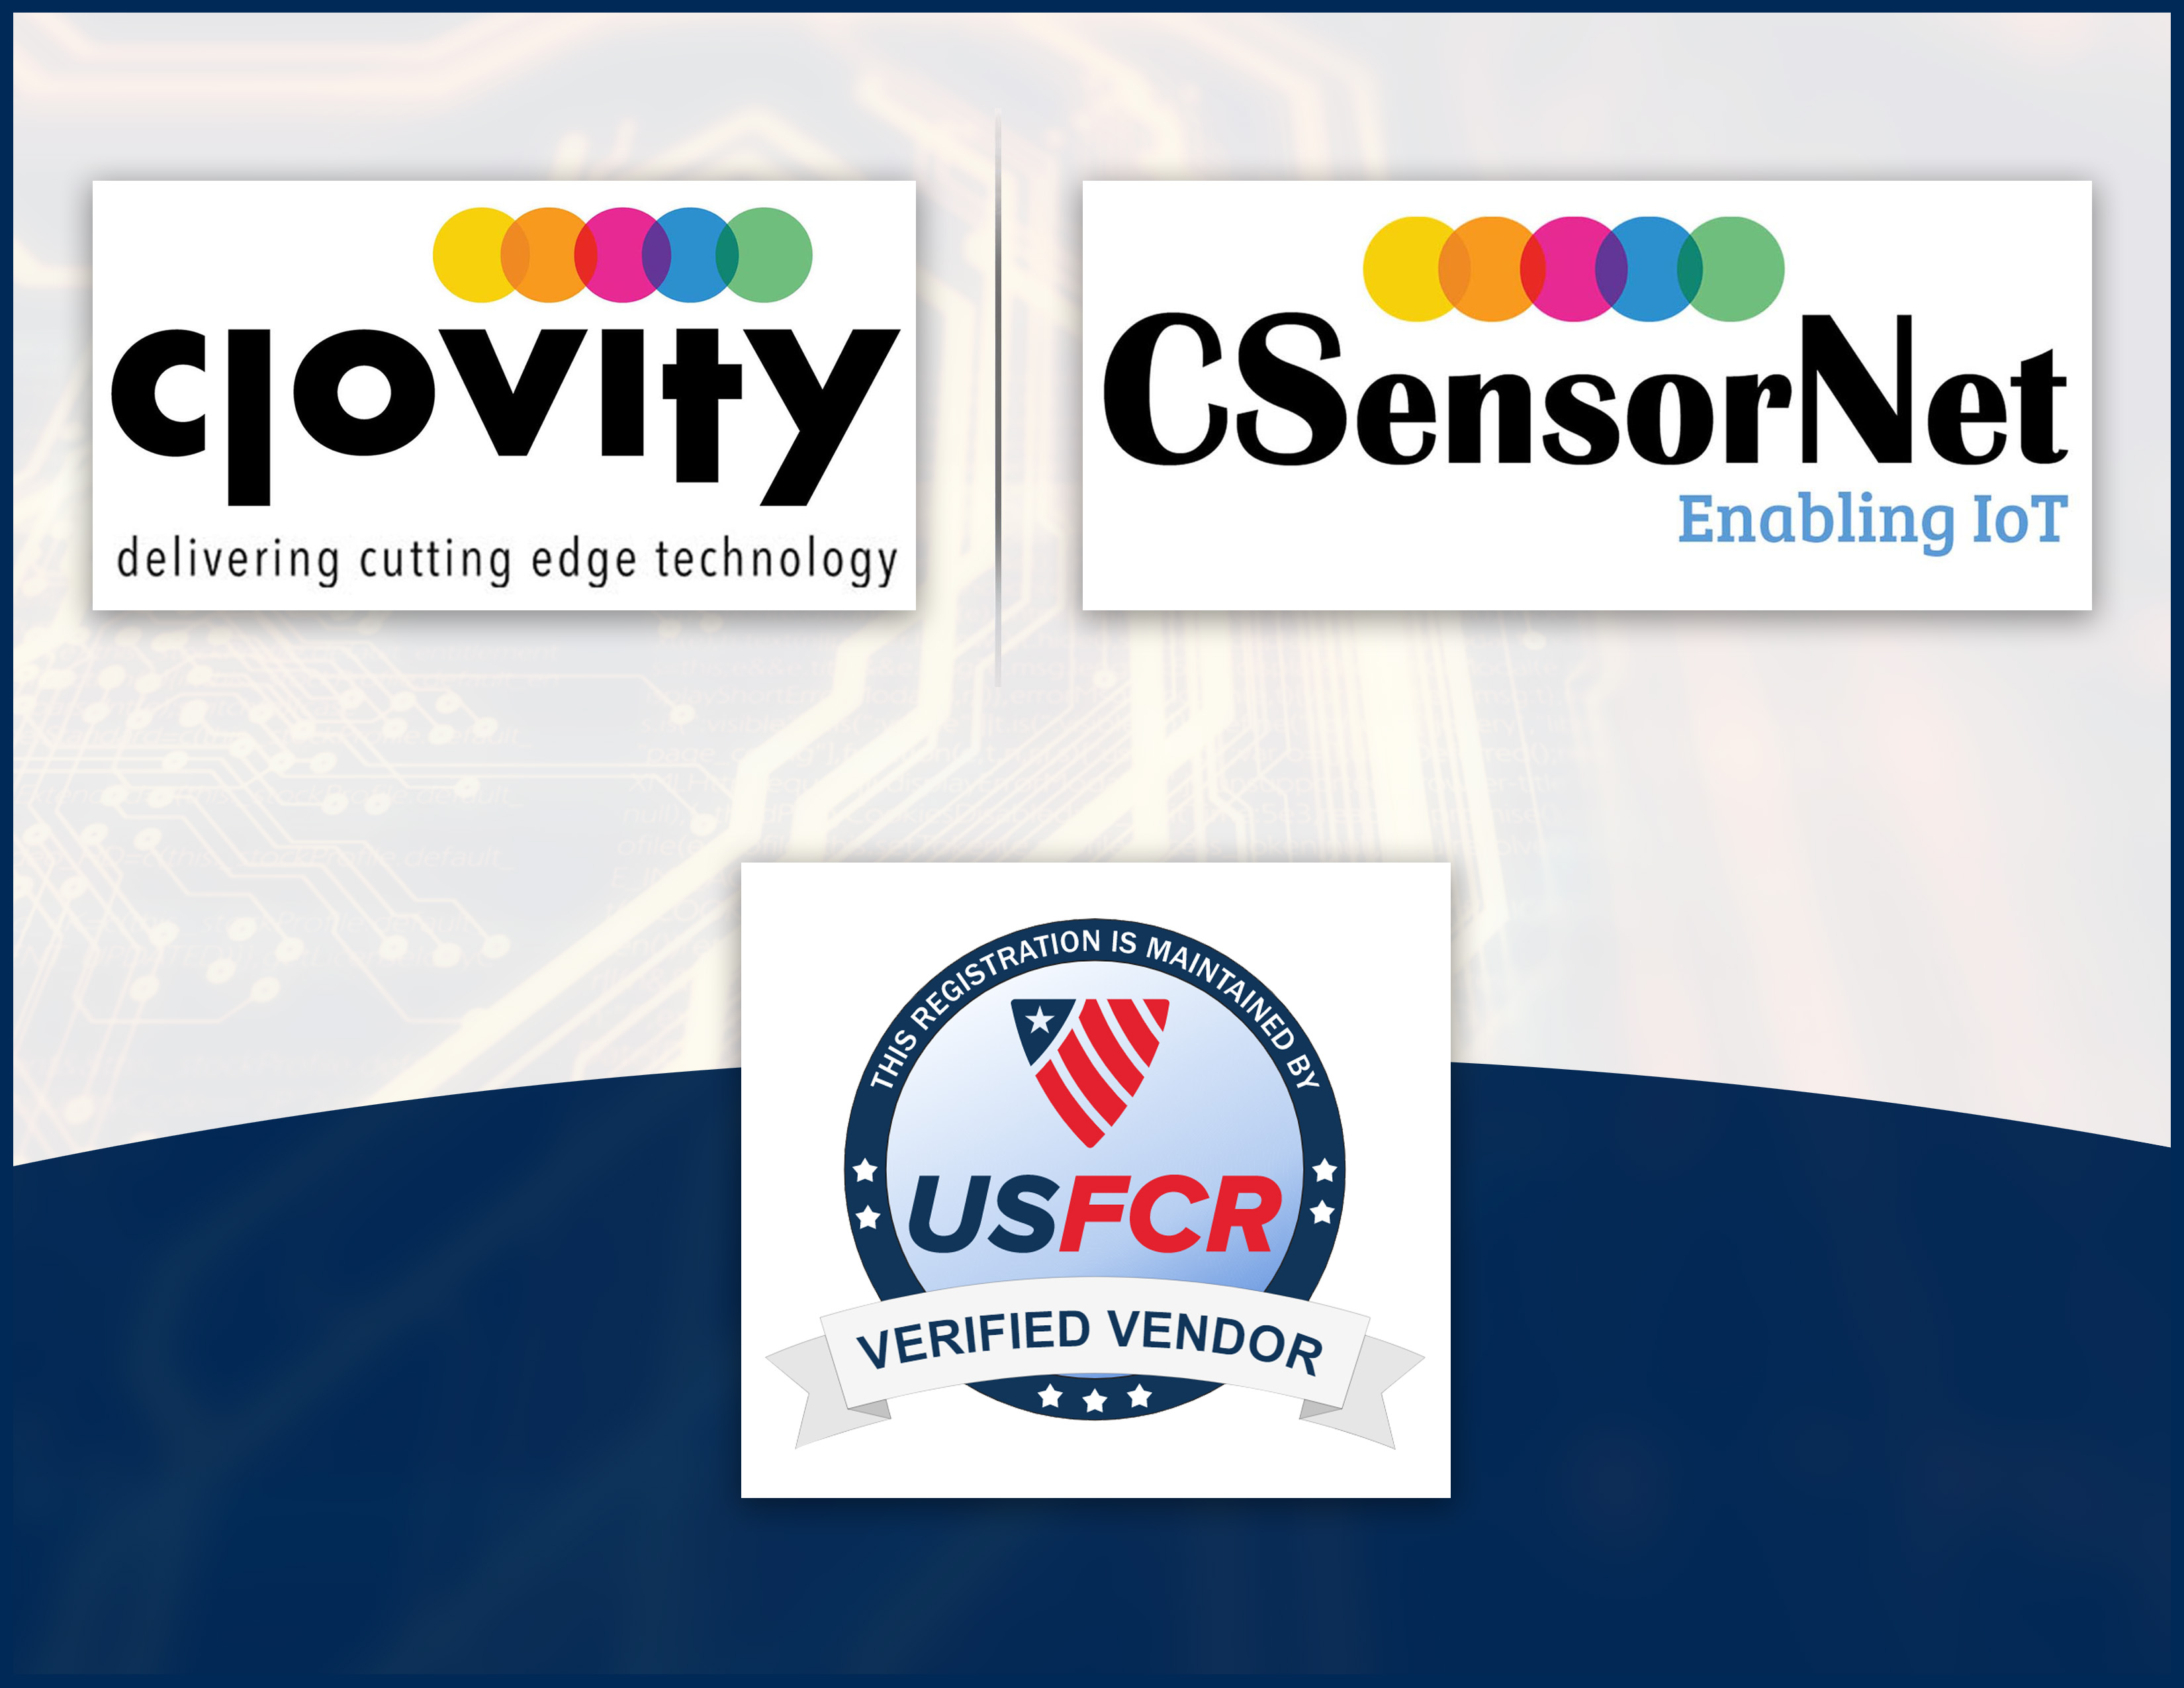 Clovity Brings Its CSensorNet IoT Platform & Professional Services Capabilities to Cities, States, & Government Entities Across the US as a Federally Approved Contractor